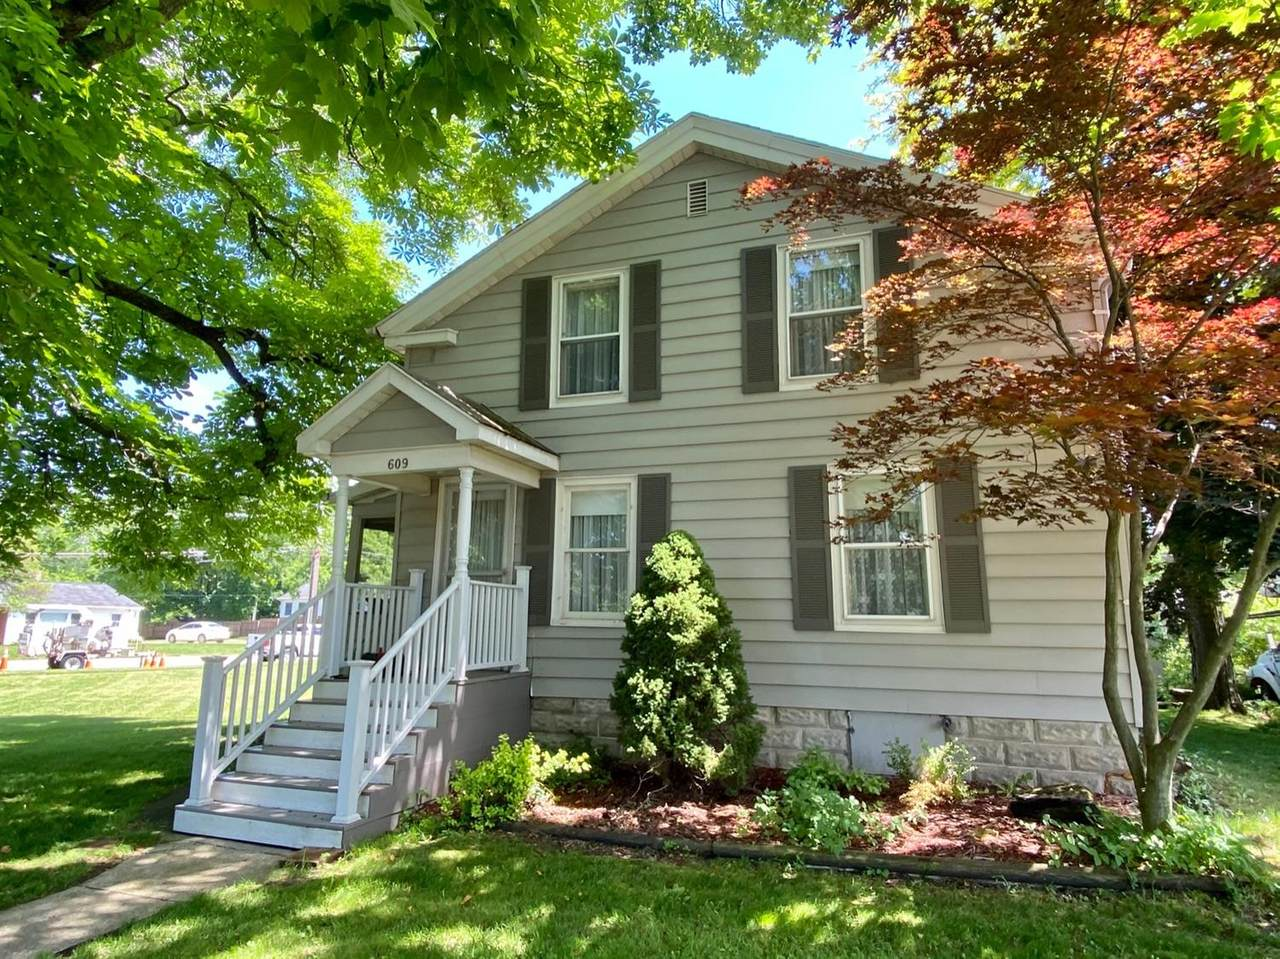 609 Middle Street - Photo 1